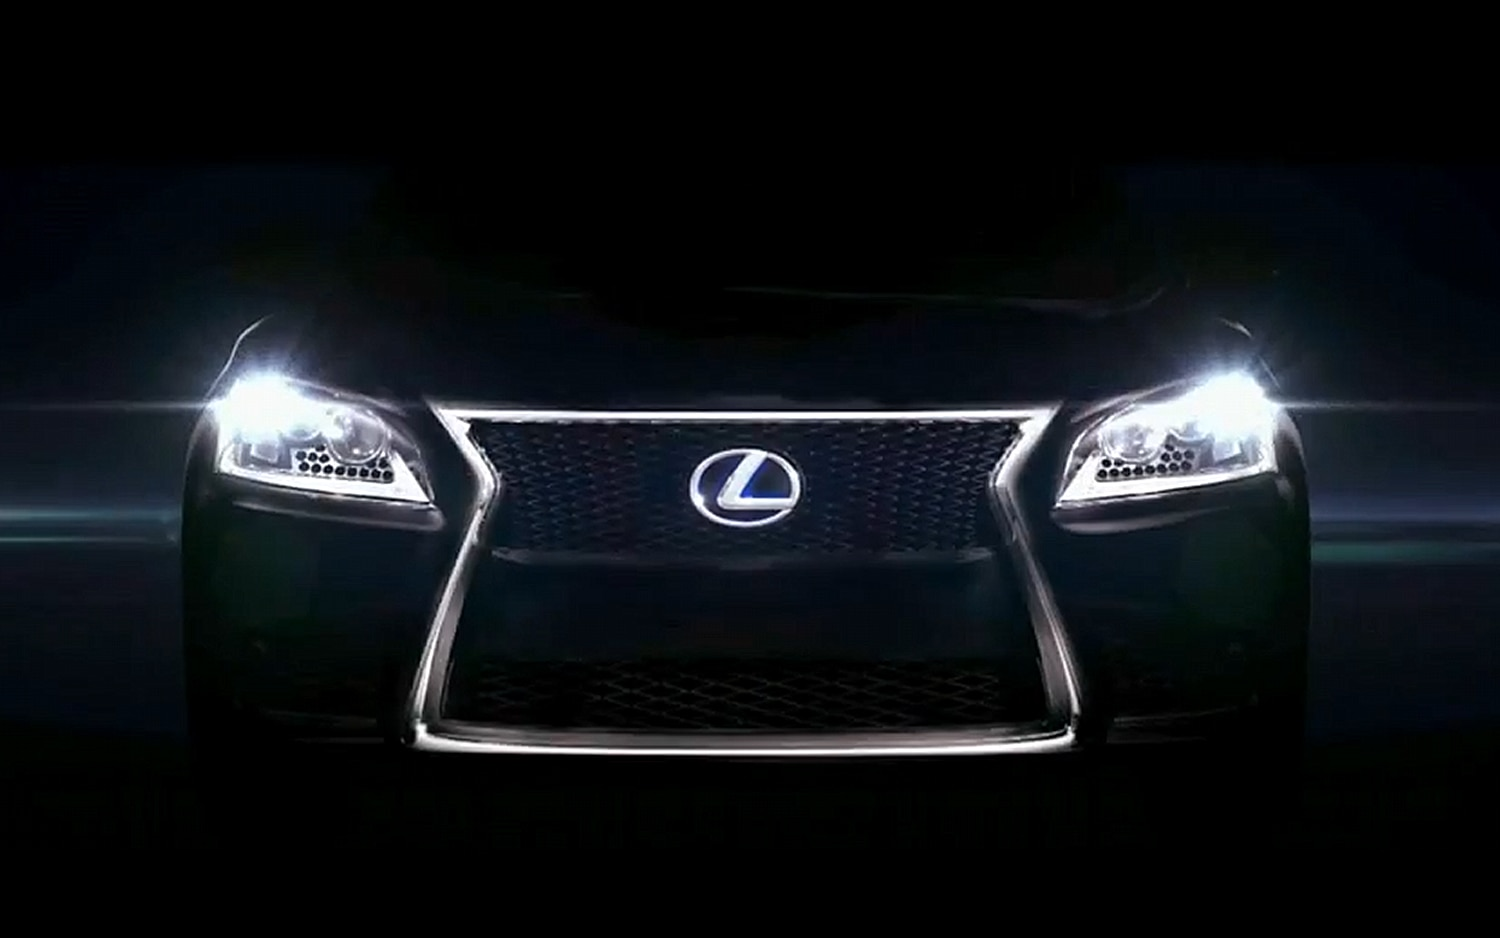 2013 Lexus Ls To Debut On July 30 1992 Teal Sc300 2dr Coupe Donny Nordlicht